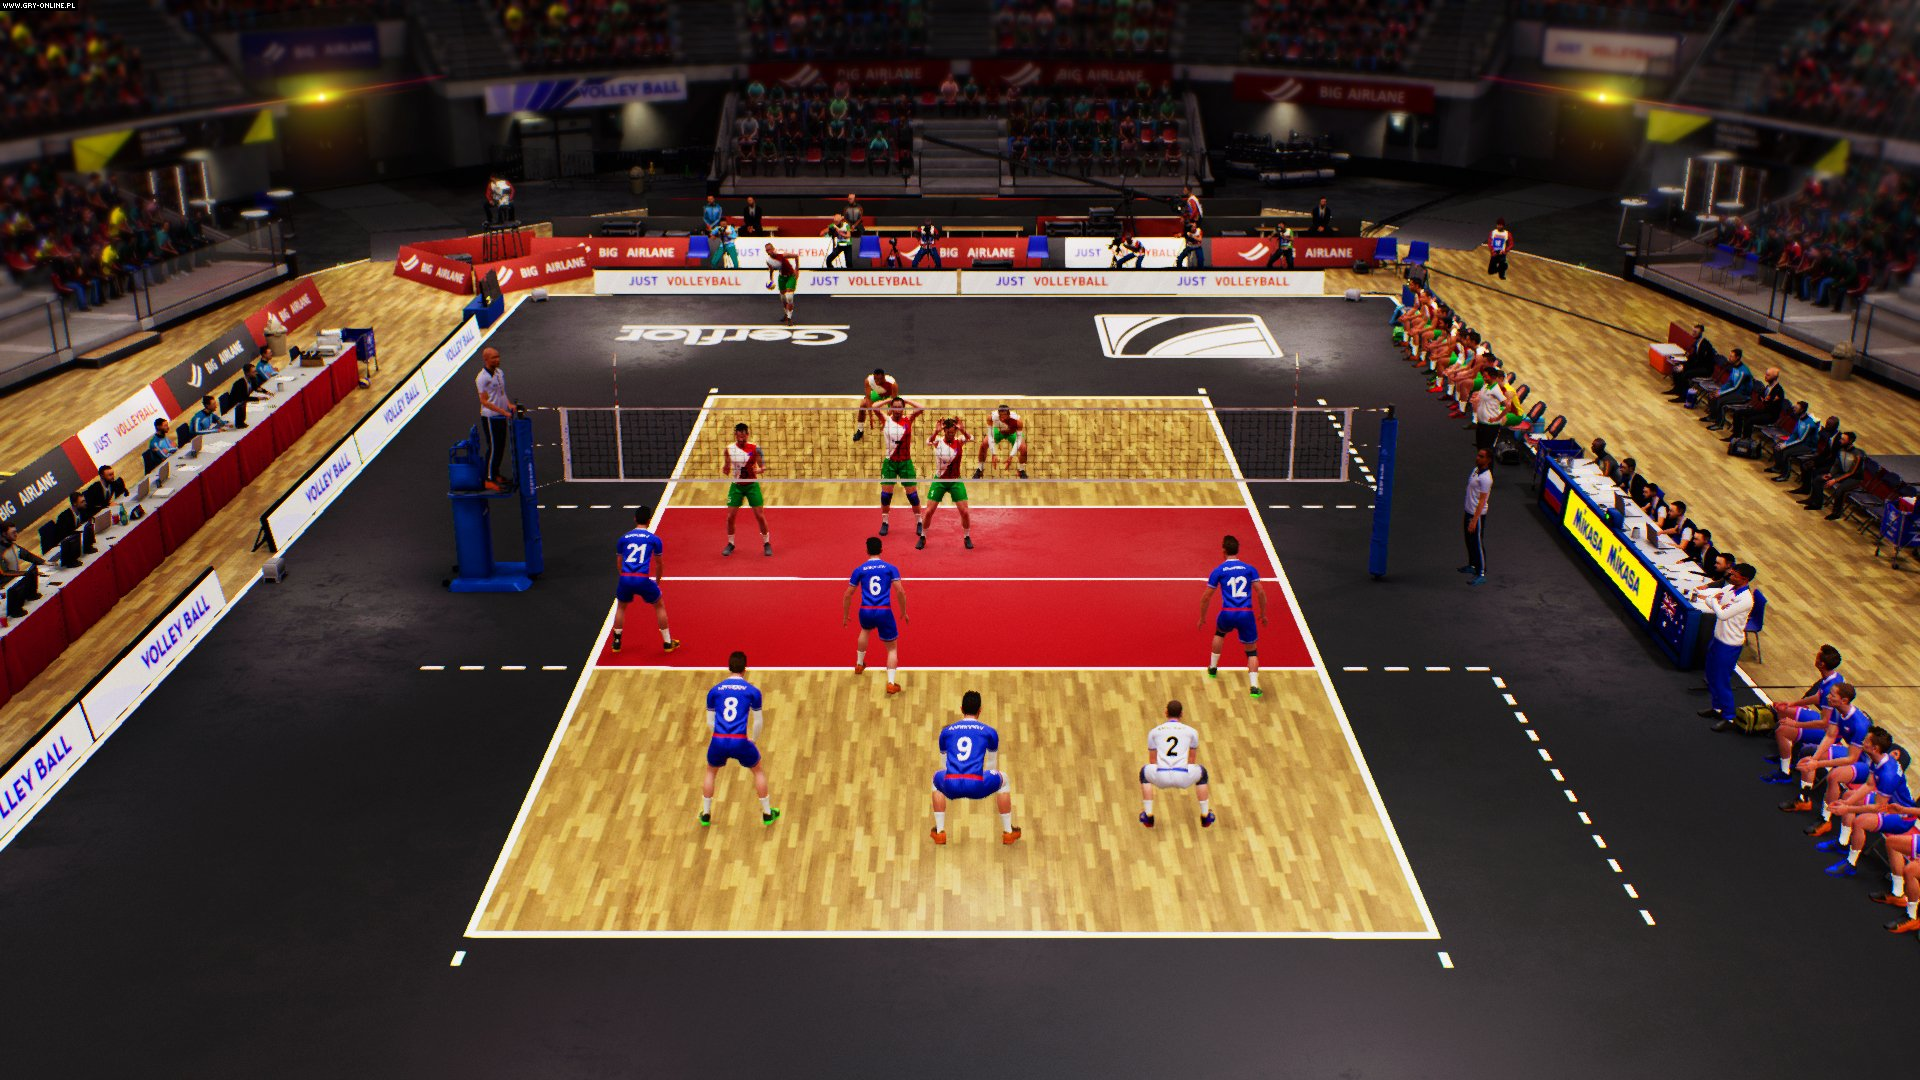 Spike Volleyball PC, PS4, XONE Games Image 2/5, Black Sheep Studio, Bigben Interactive